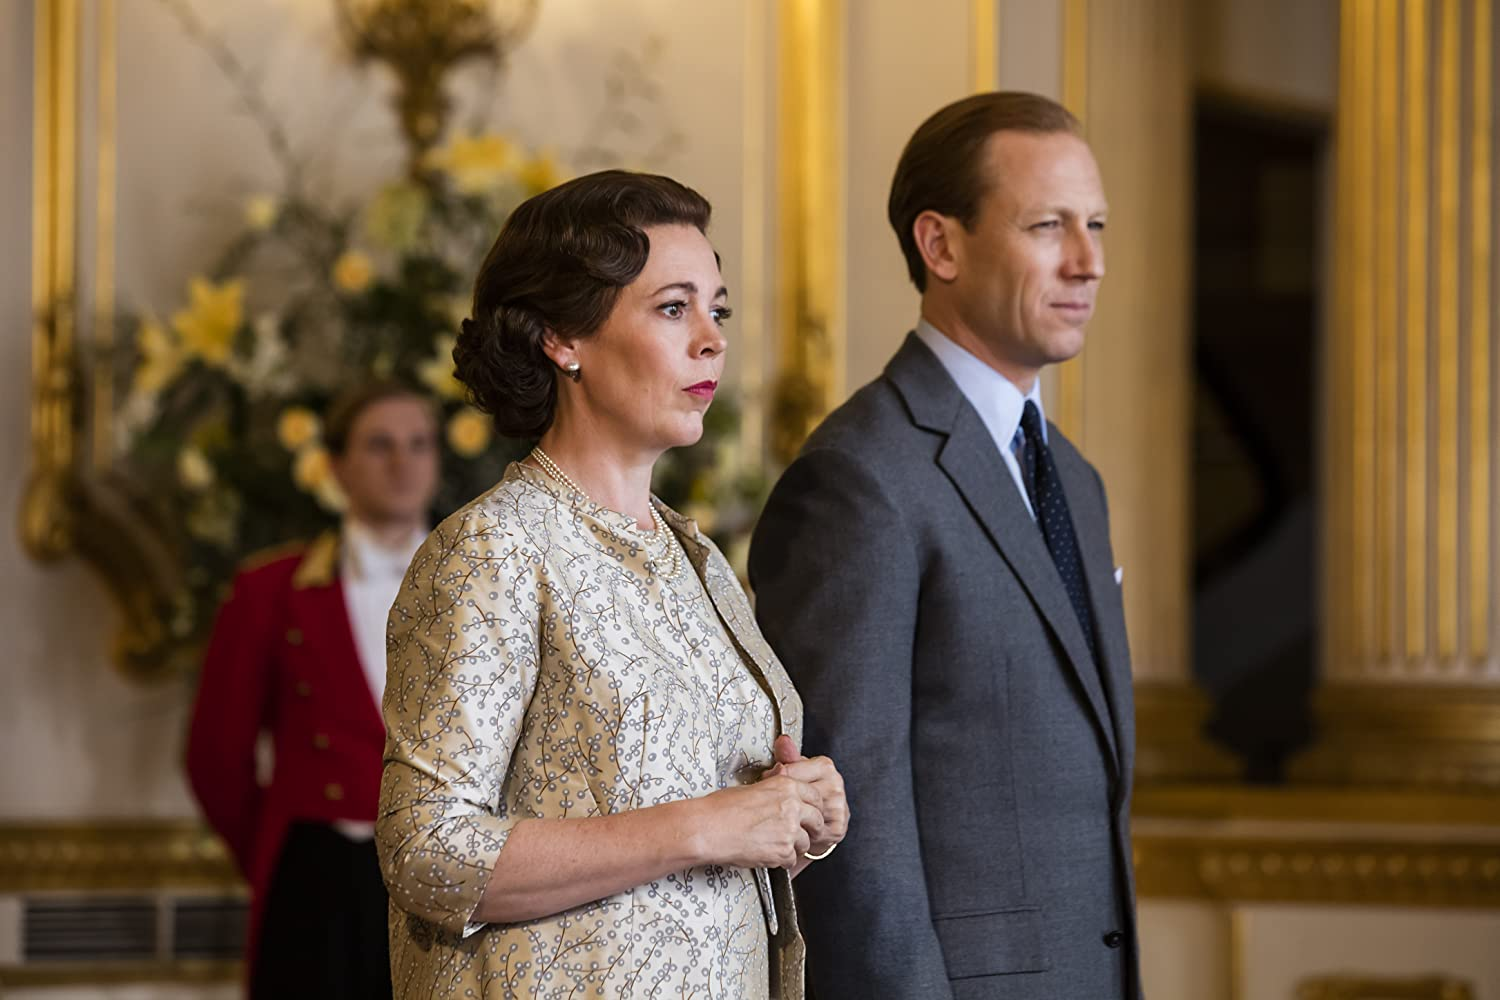 Tobias Menzies and Olivia Colman in The Crown (2016)